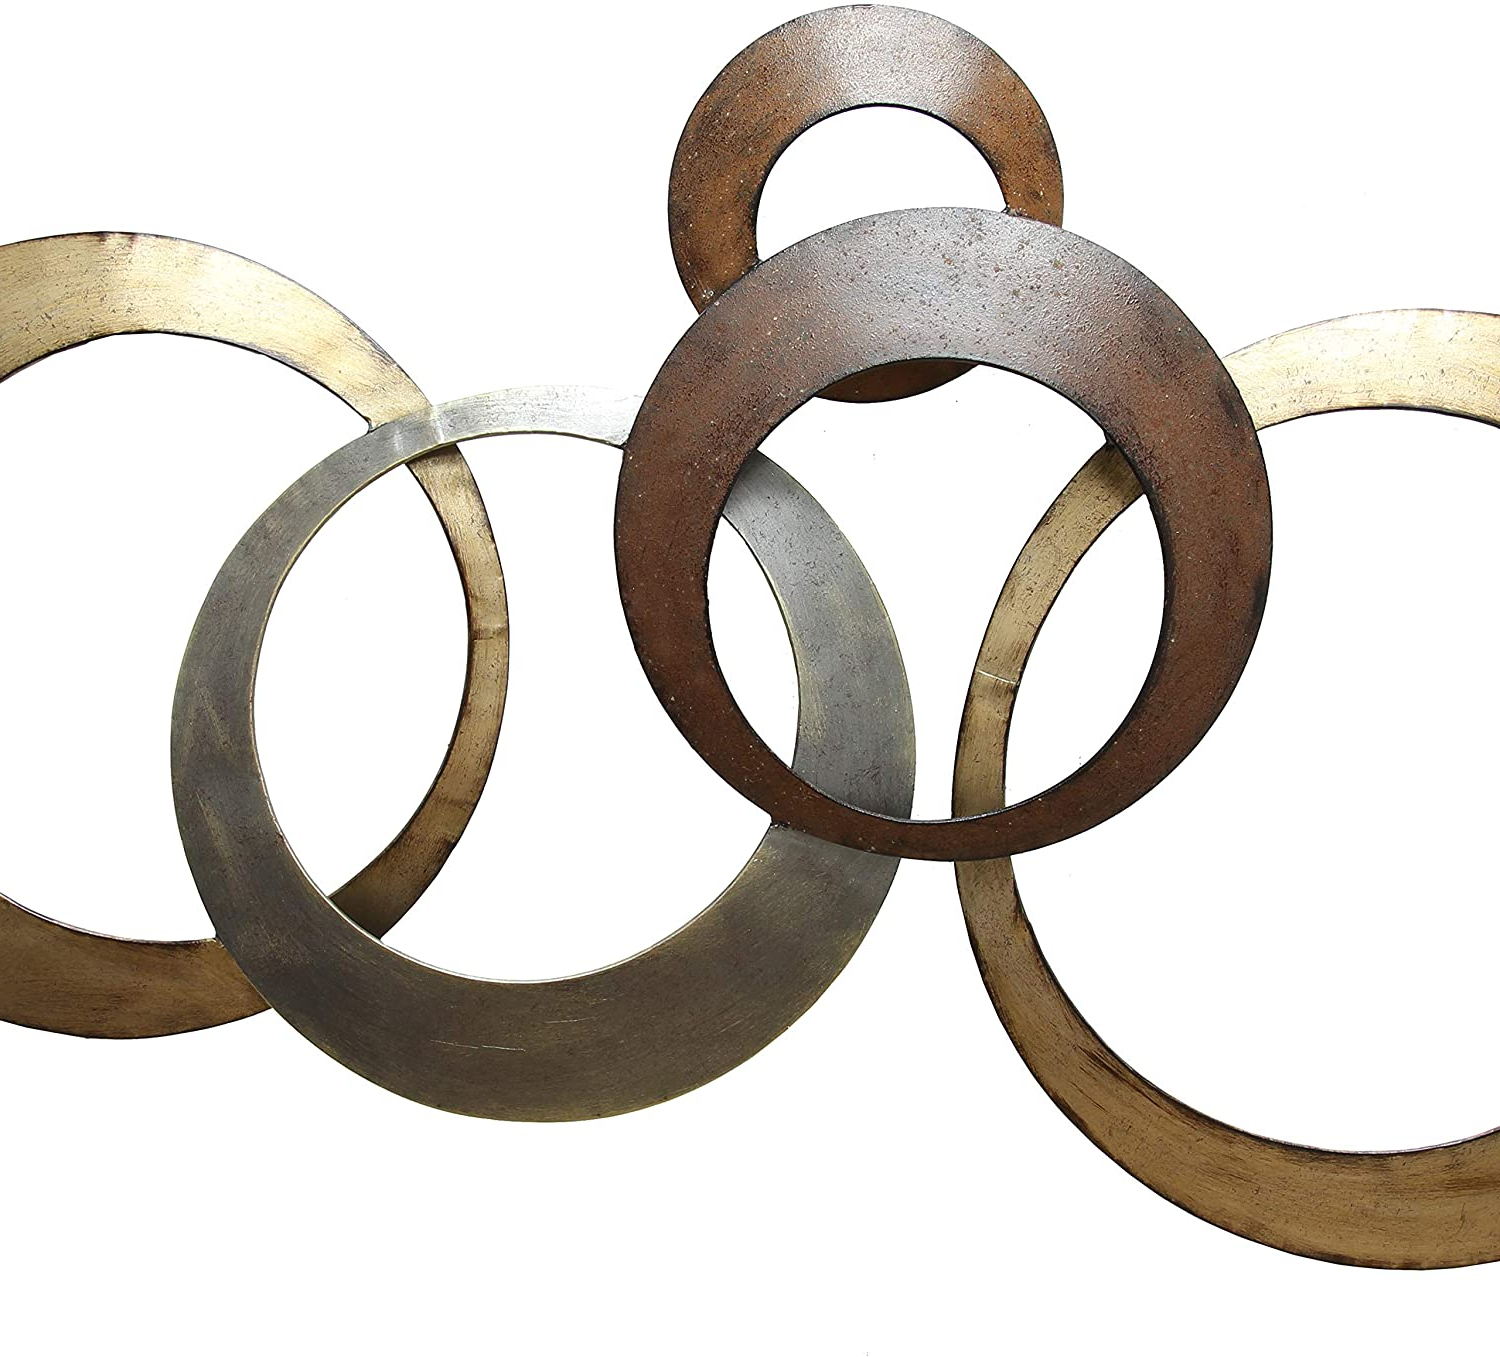 Preferred Rings Wall Décor By Stratton Home Decor Inside Stratton Home Decor Spc 999 Centerpiece, 37.99 Wx 1.97 Dx (View 6 of 20)